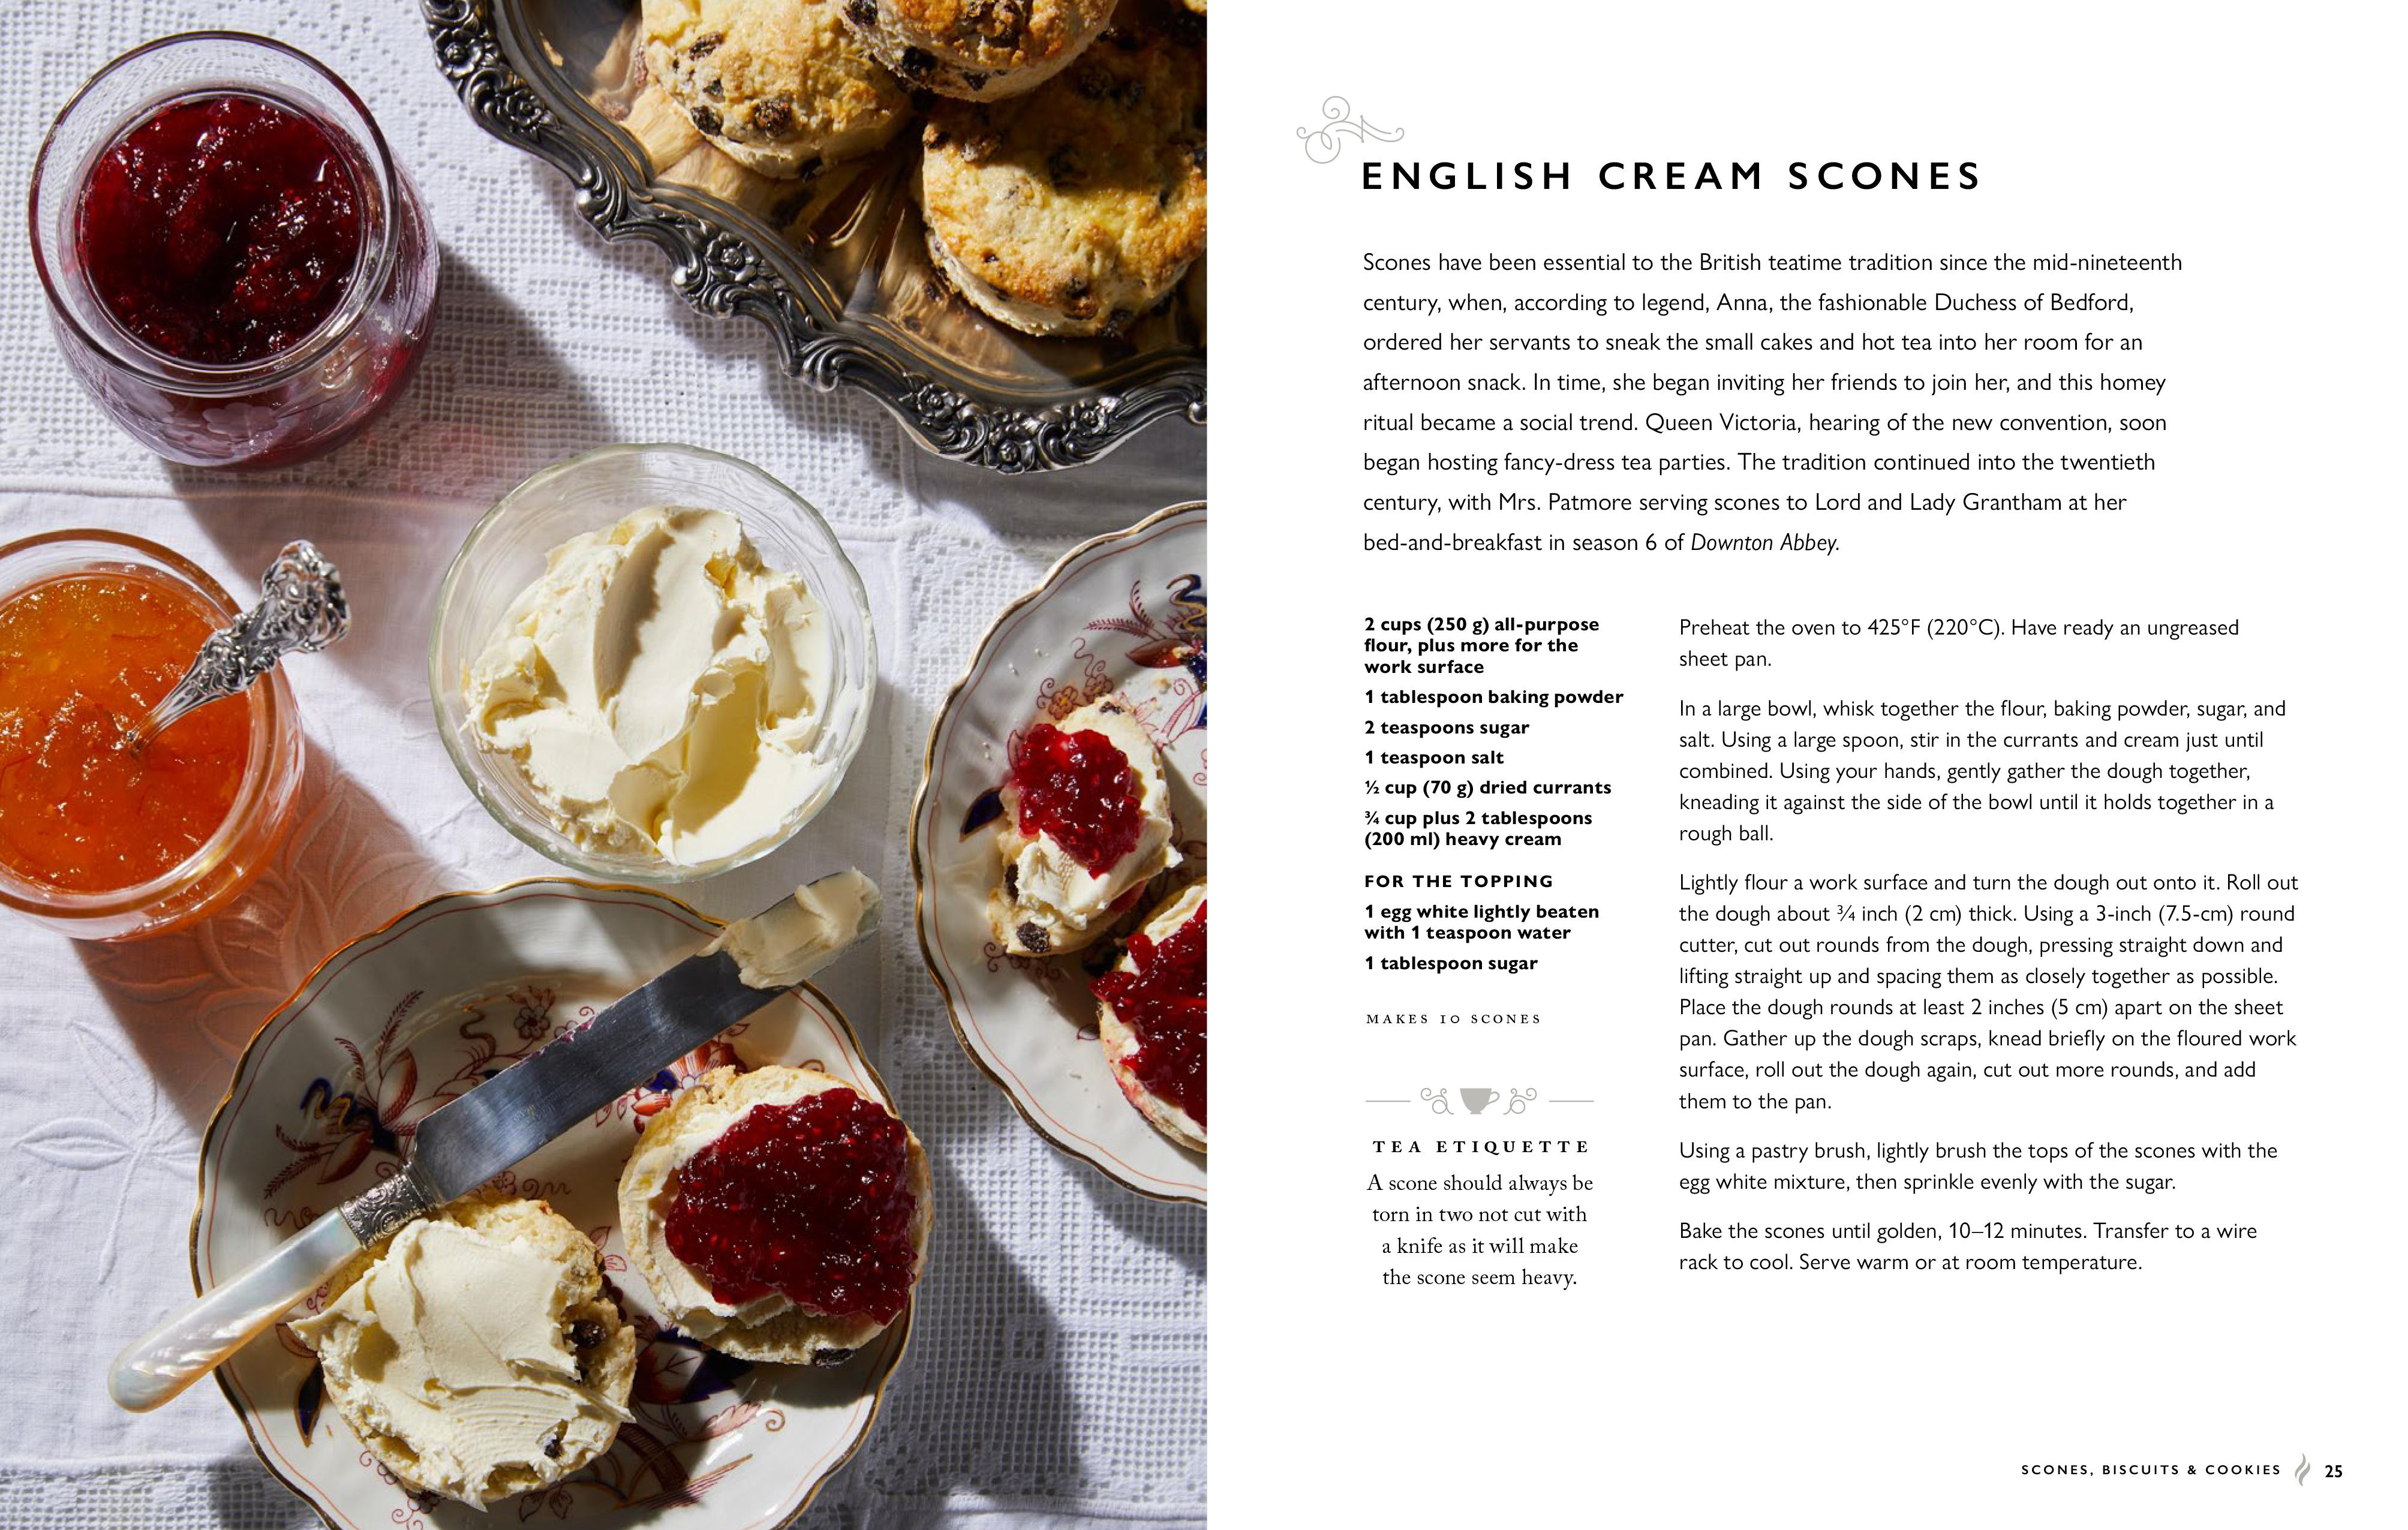 English Cream Scones recipe from The Official Downton Abbey Afternoon Tea Cookbook: Teatime Drinks, Scones, Savories & Sweets. (Image: Weldon Owen)